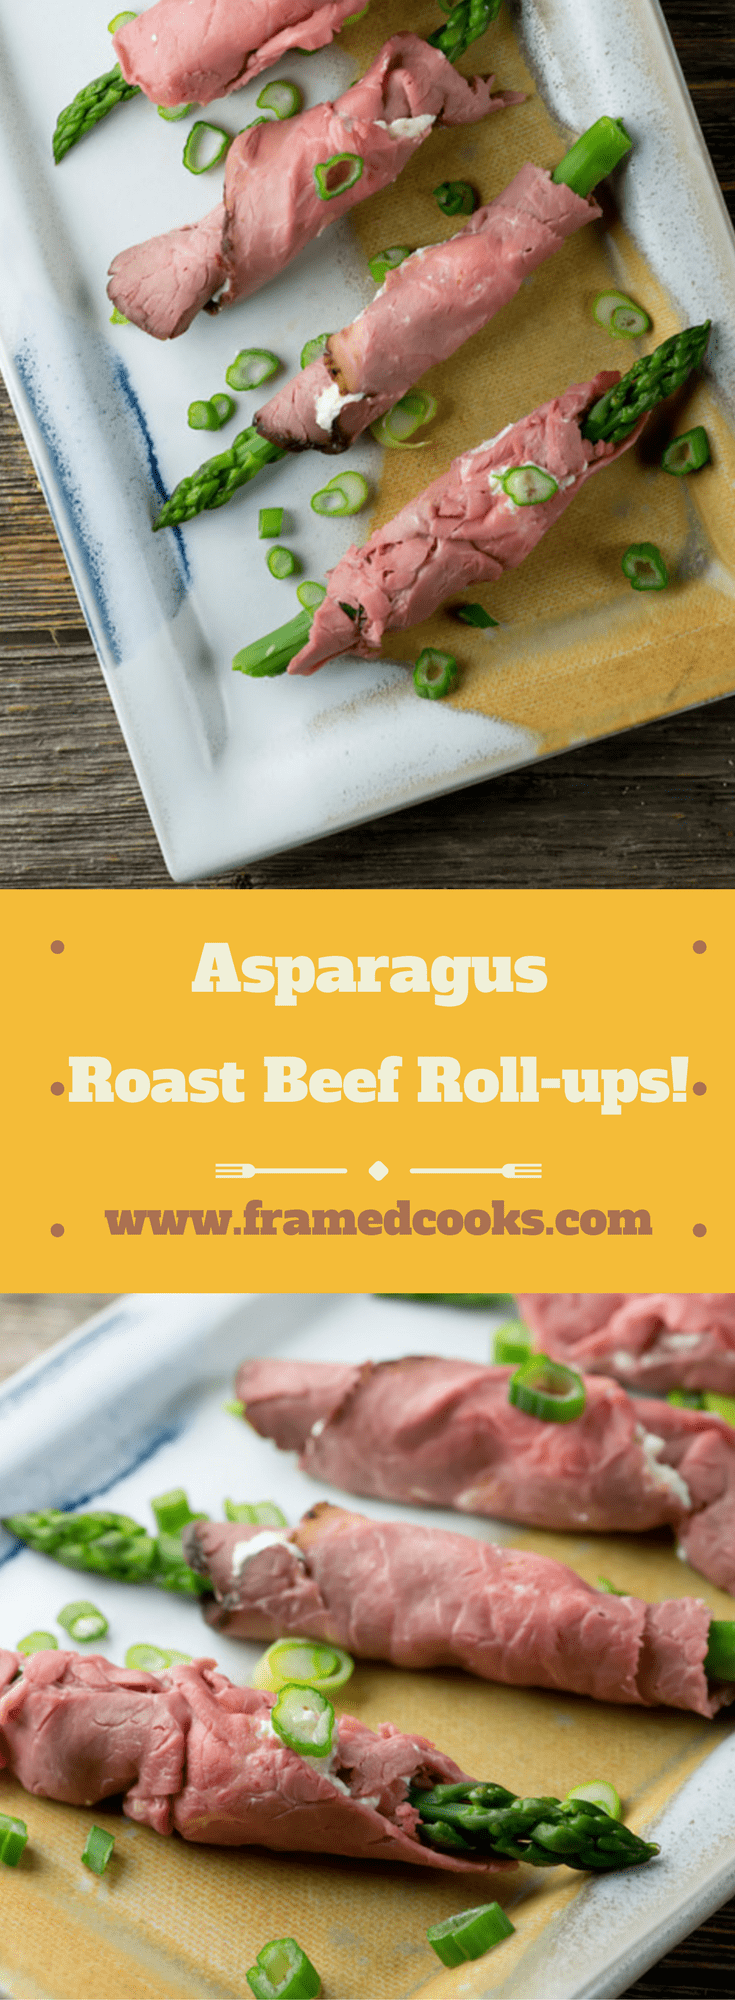 Roll up some asparagus in a roast beef and some horseradish cream cheese for an instant elegant appetizer. Horseradish asparagus roast beef roll-ups!